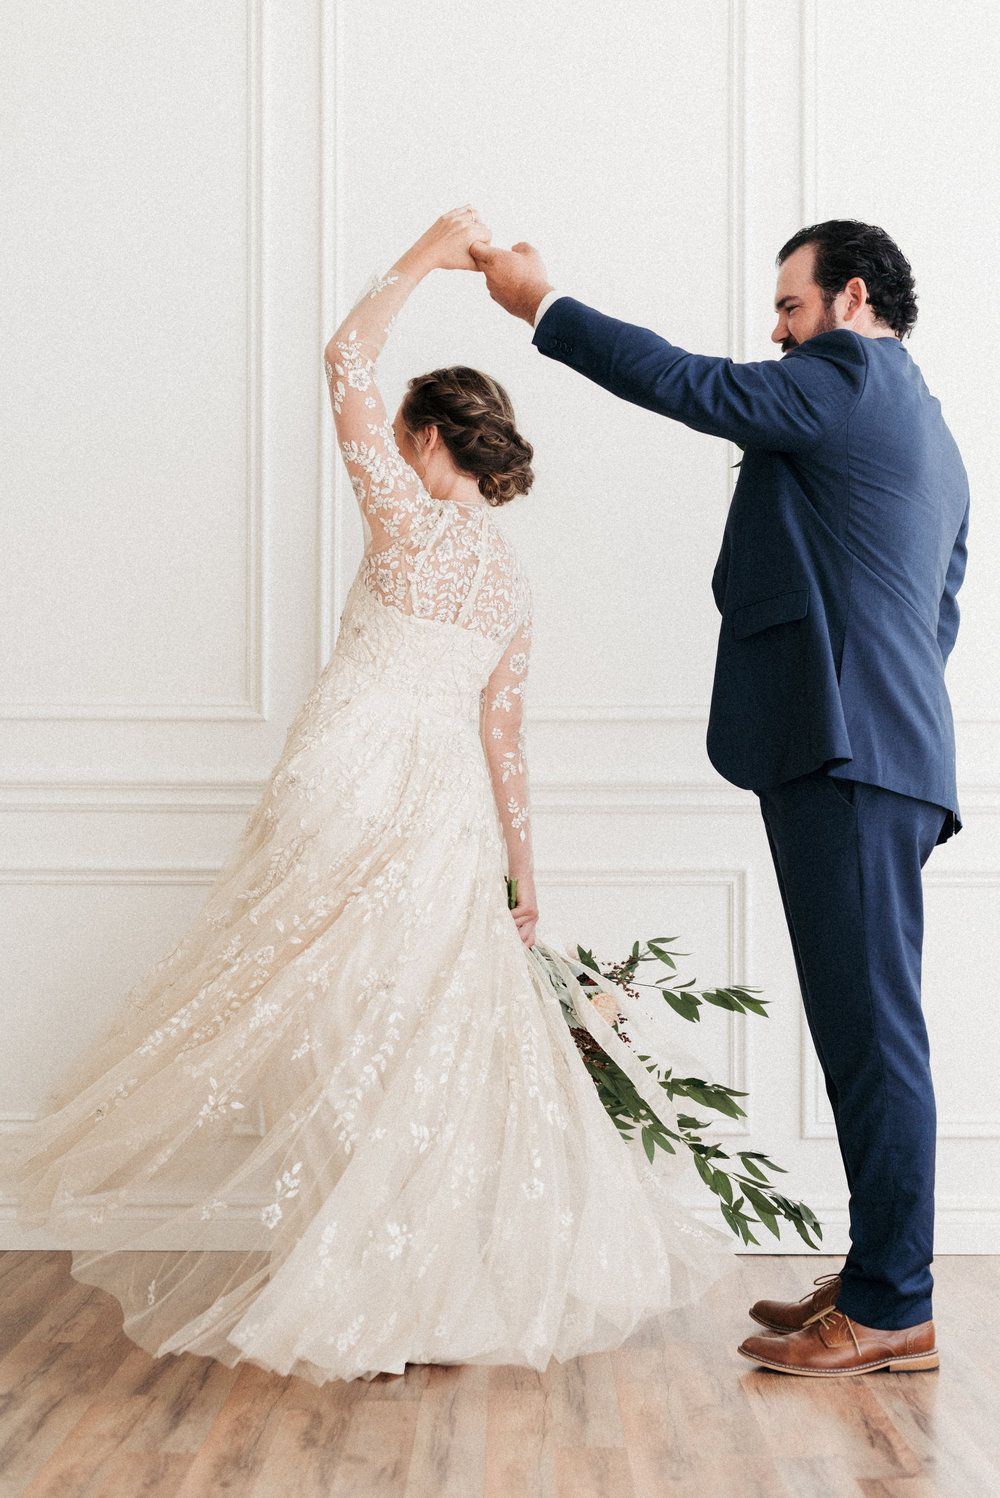 296fee1d06802 Bhldn, Wedding Couples, Anthropologie, Lace Weddings, Anthropology, Lace  Wedding Dress